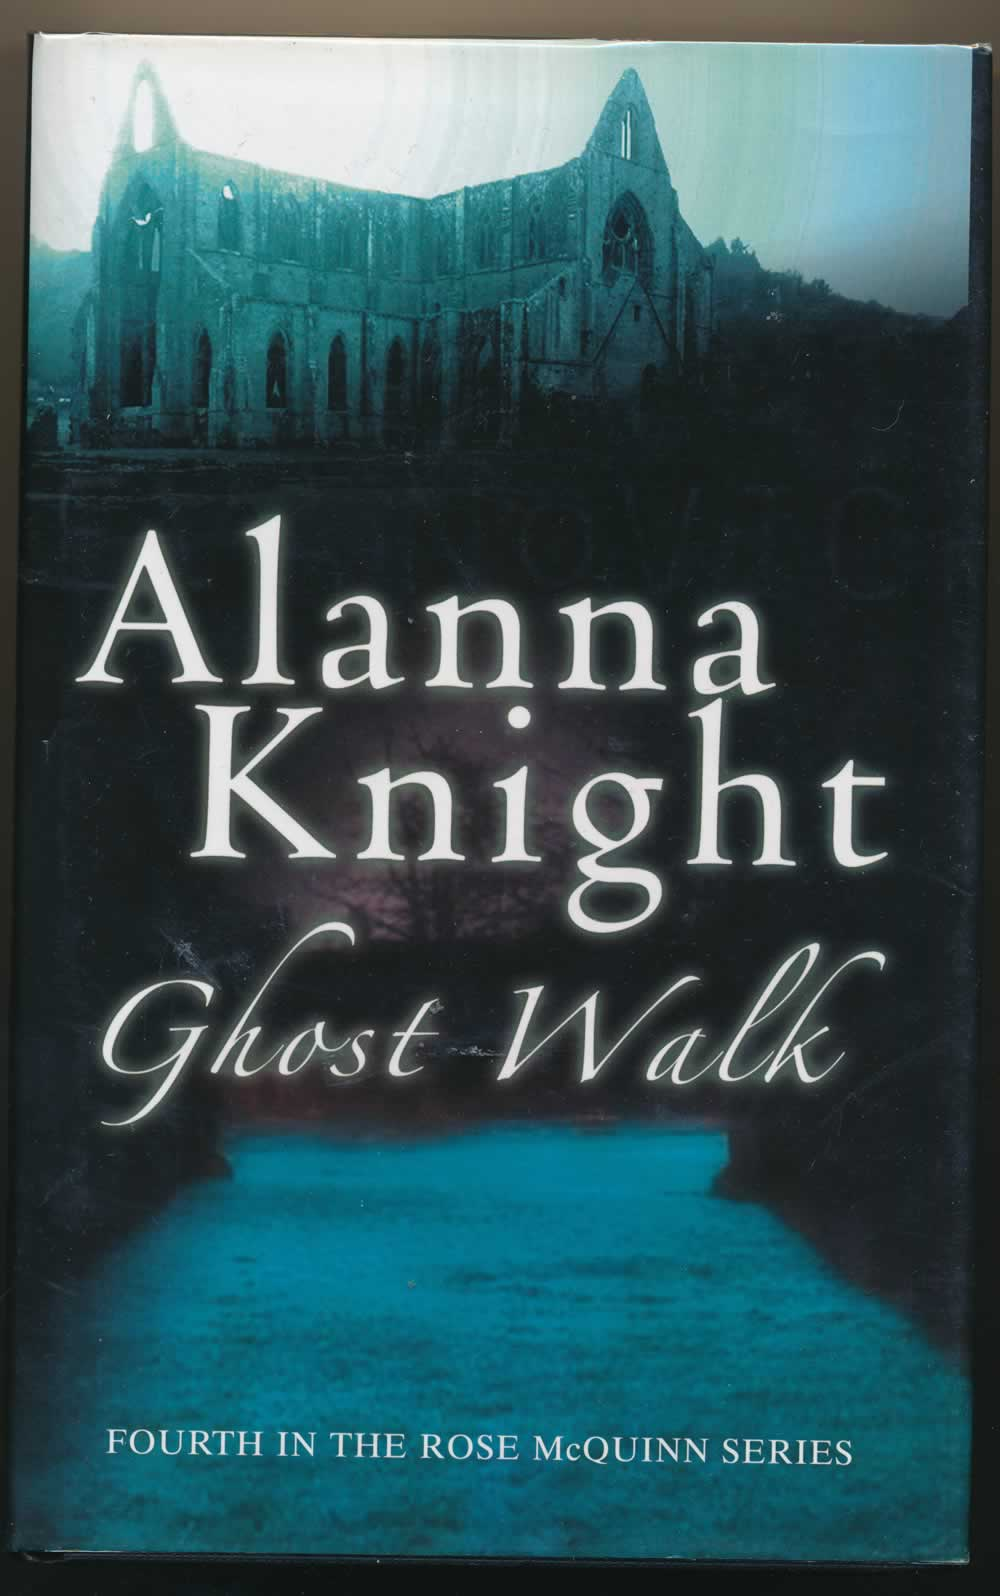 Ghost walk: a Rose McQuinn mystery